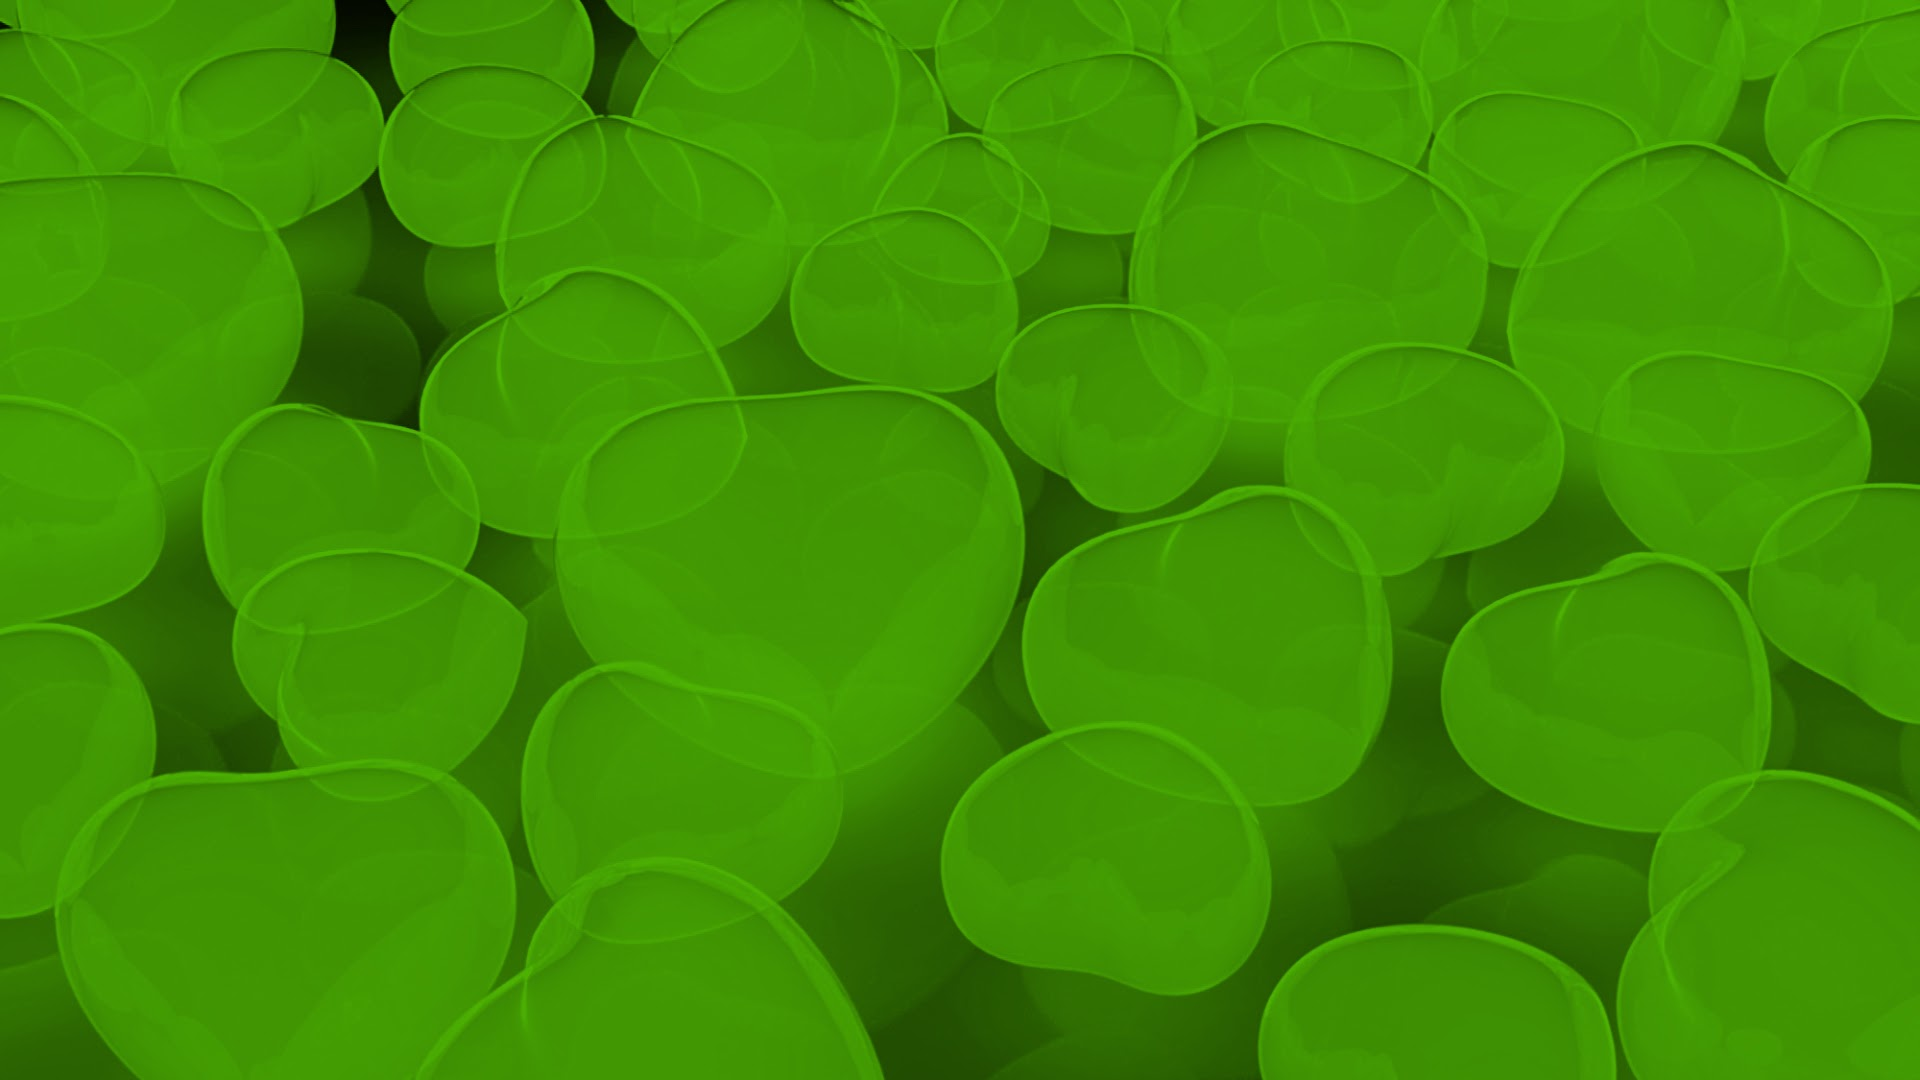 Green Neon Hearts Free Background